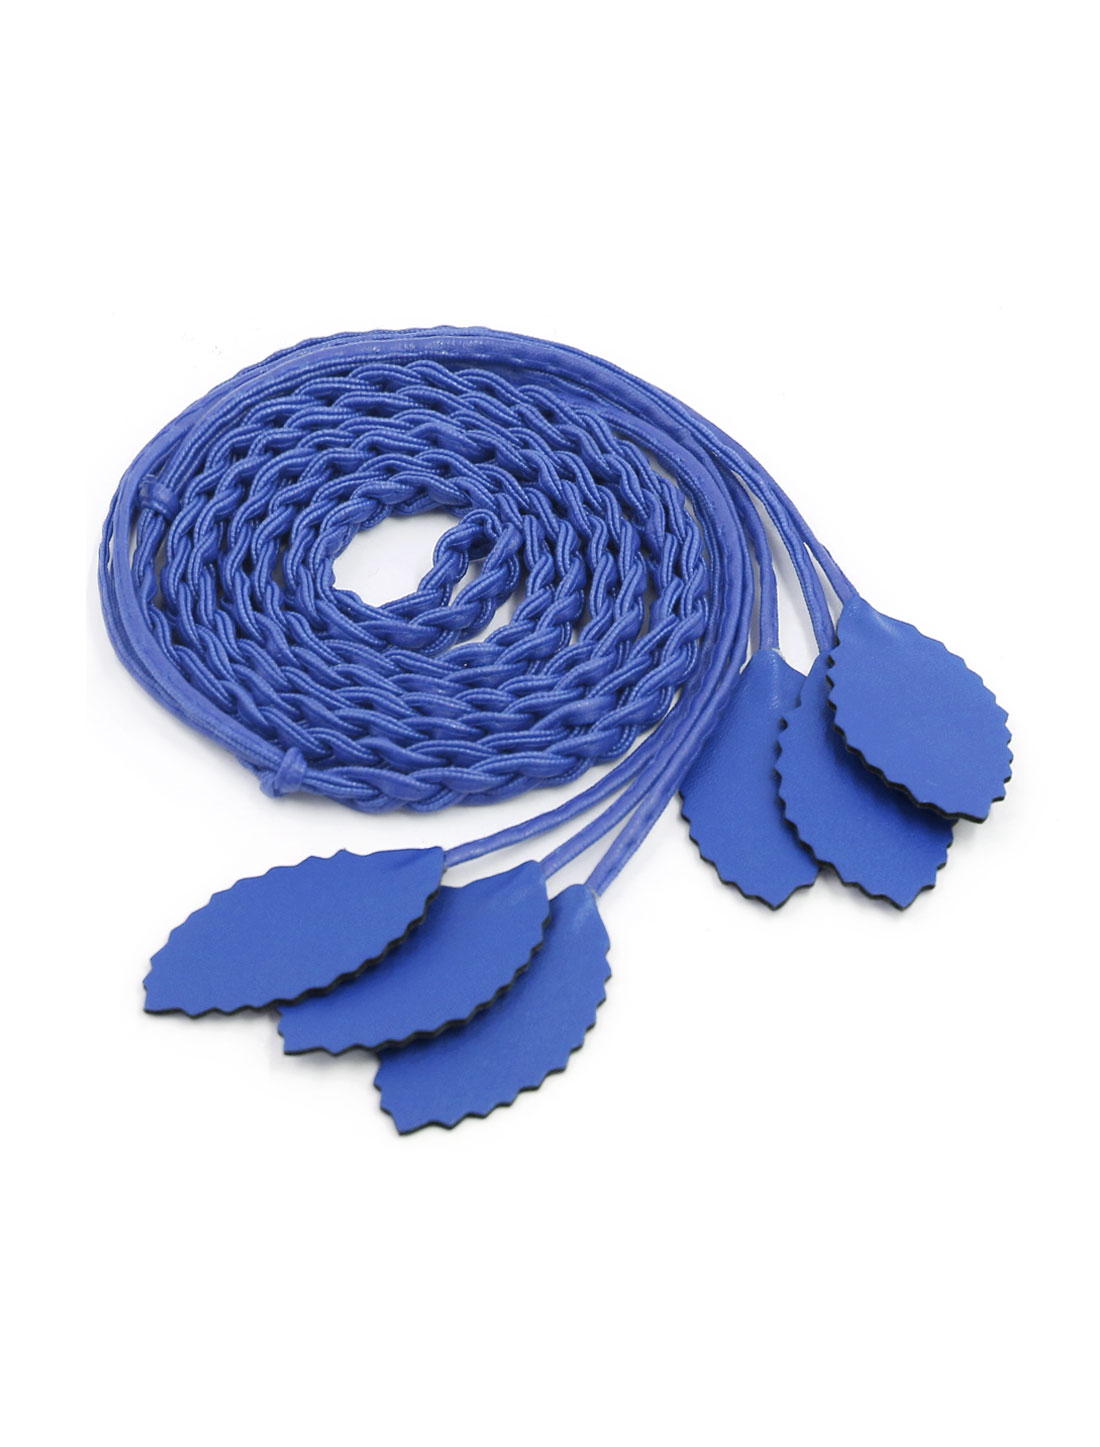 Women Self Tie Leaves Skinny PU Braided Waist Belt Royal Blue